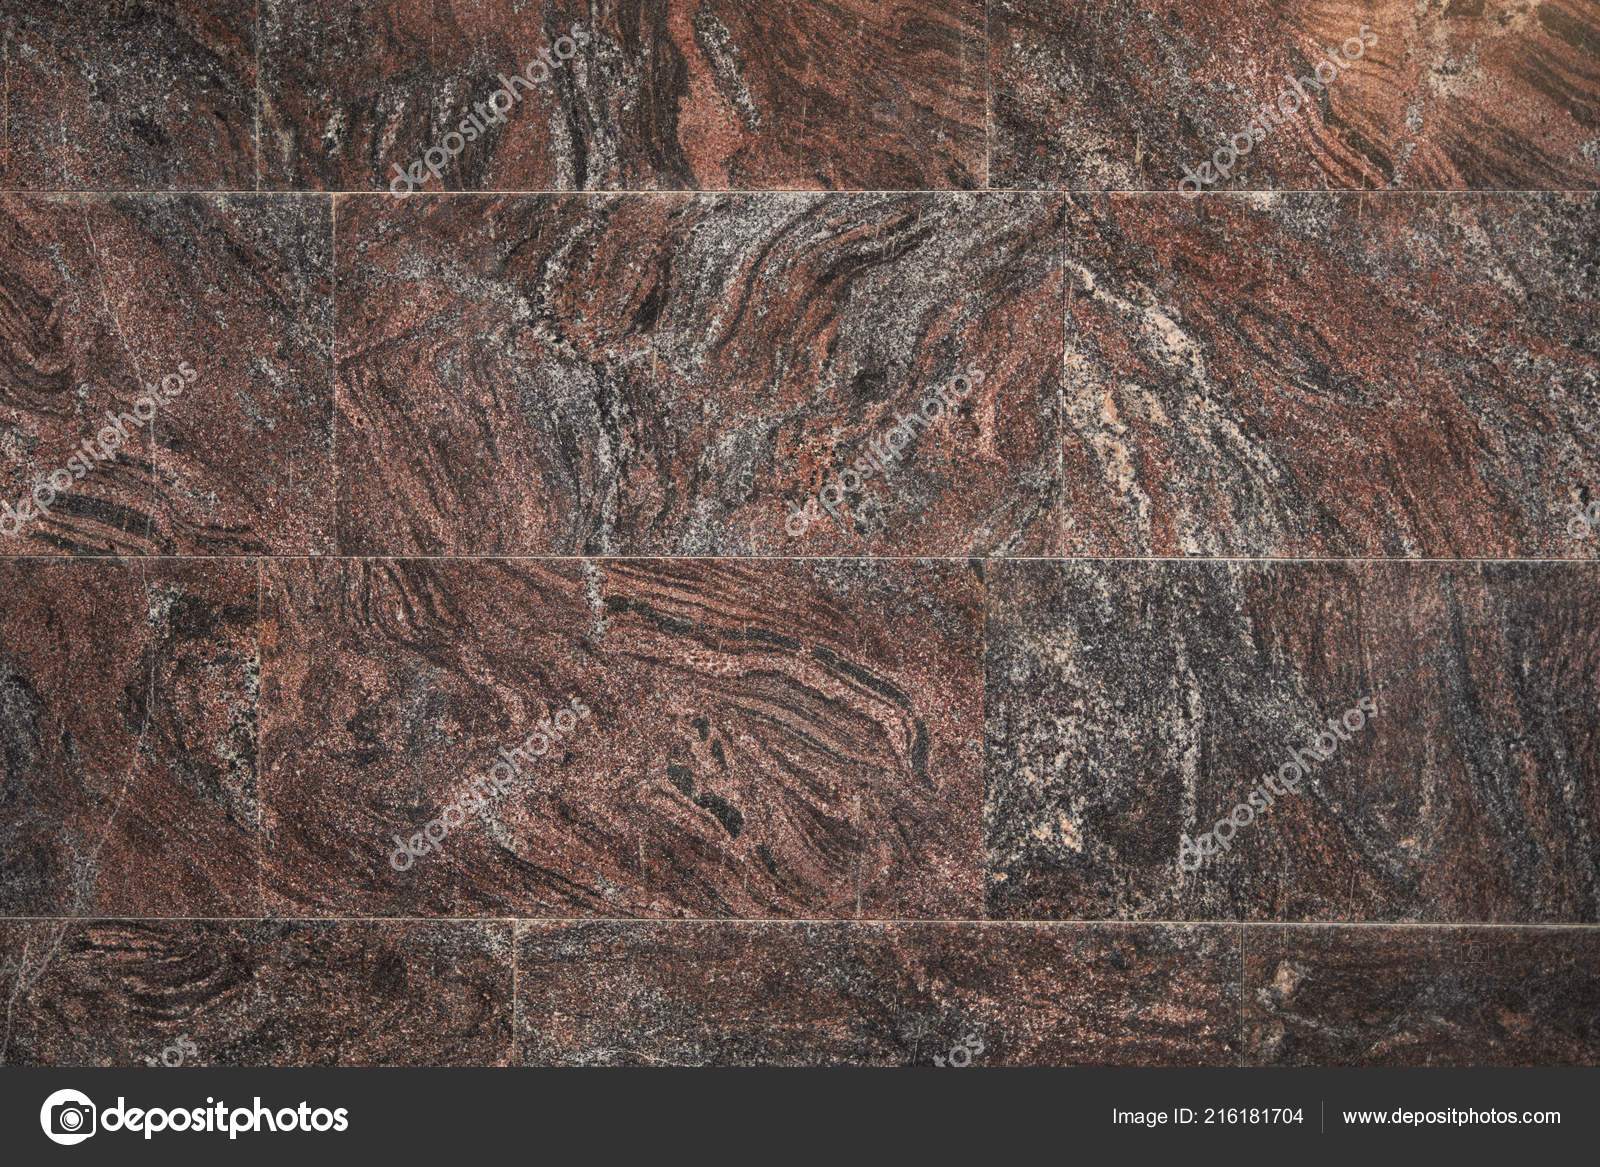 Red Brown Stone Texture Marble Wall Background Stock Photo C Spaxiax 216181704